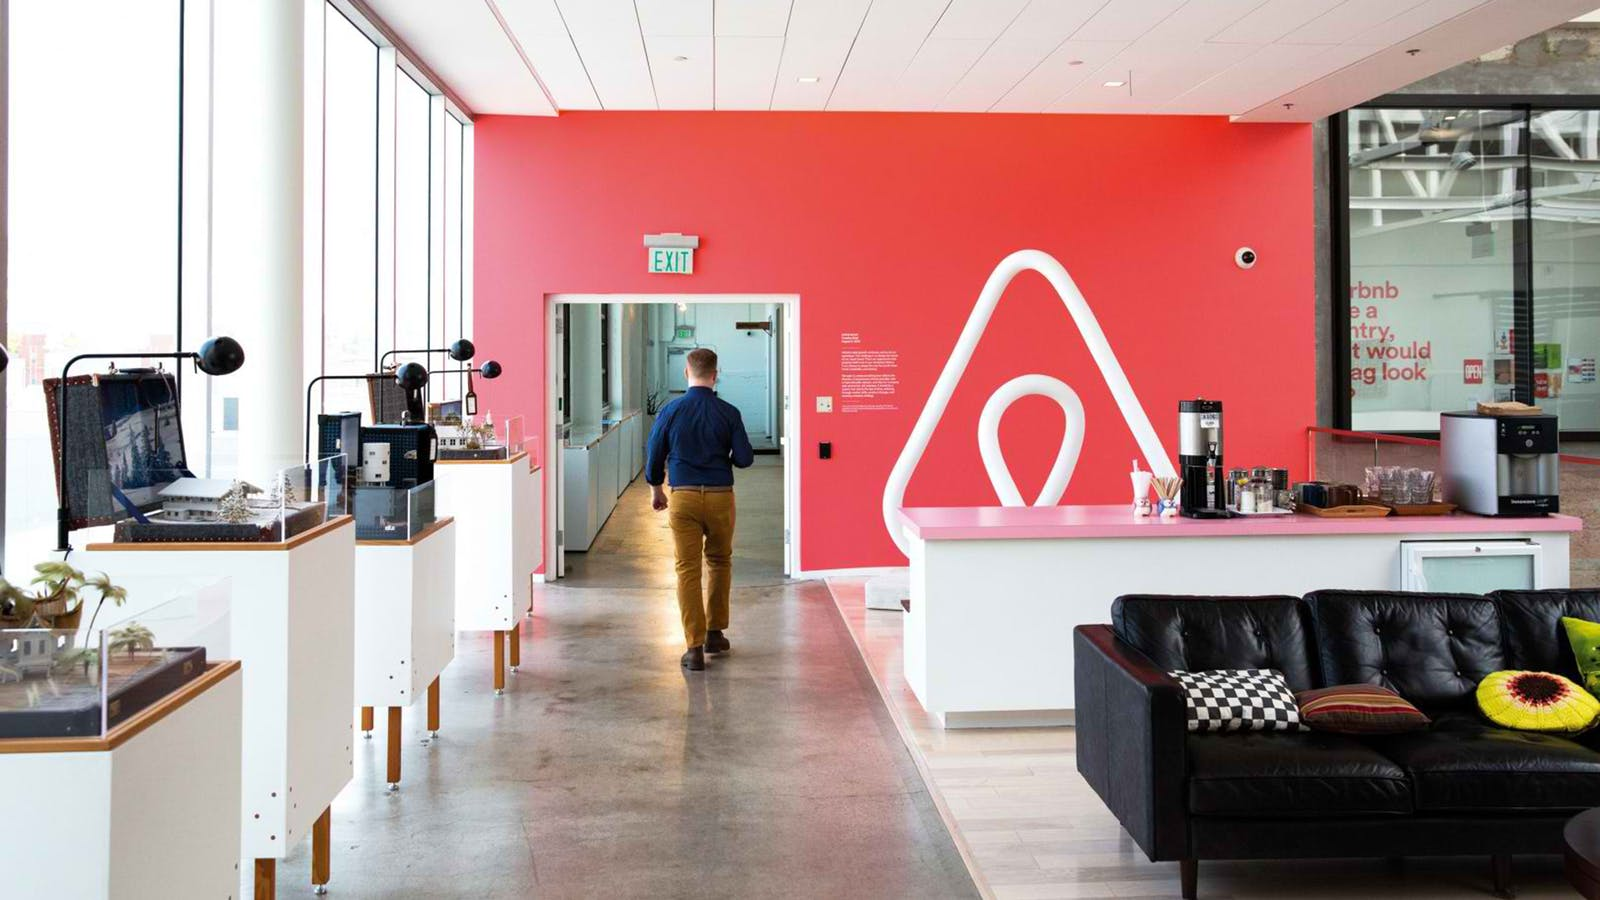 Airbnb's headquarters in San Francisco. Photo: Airbnb